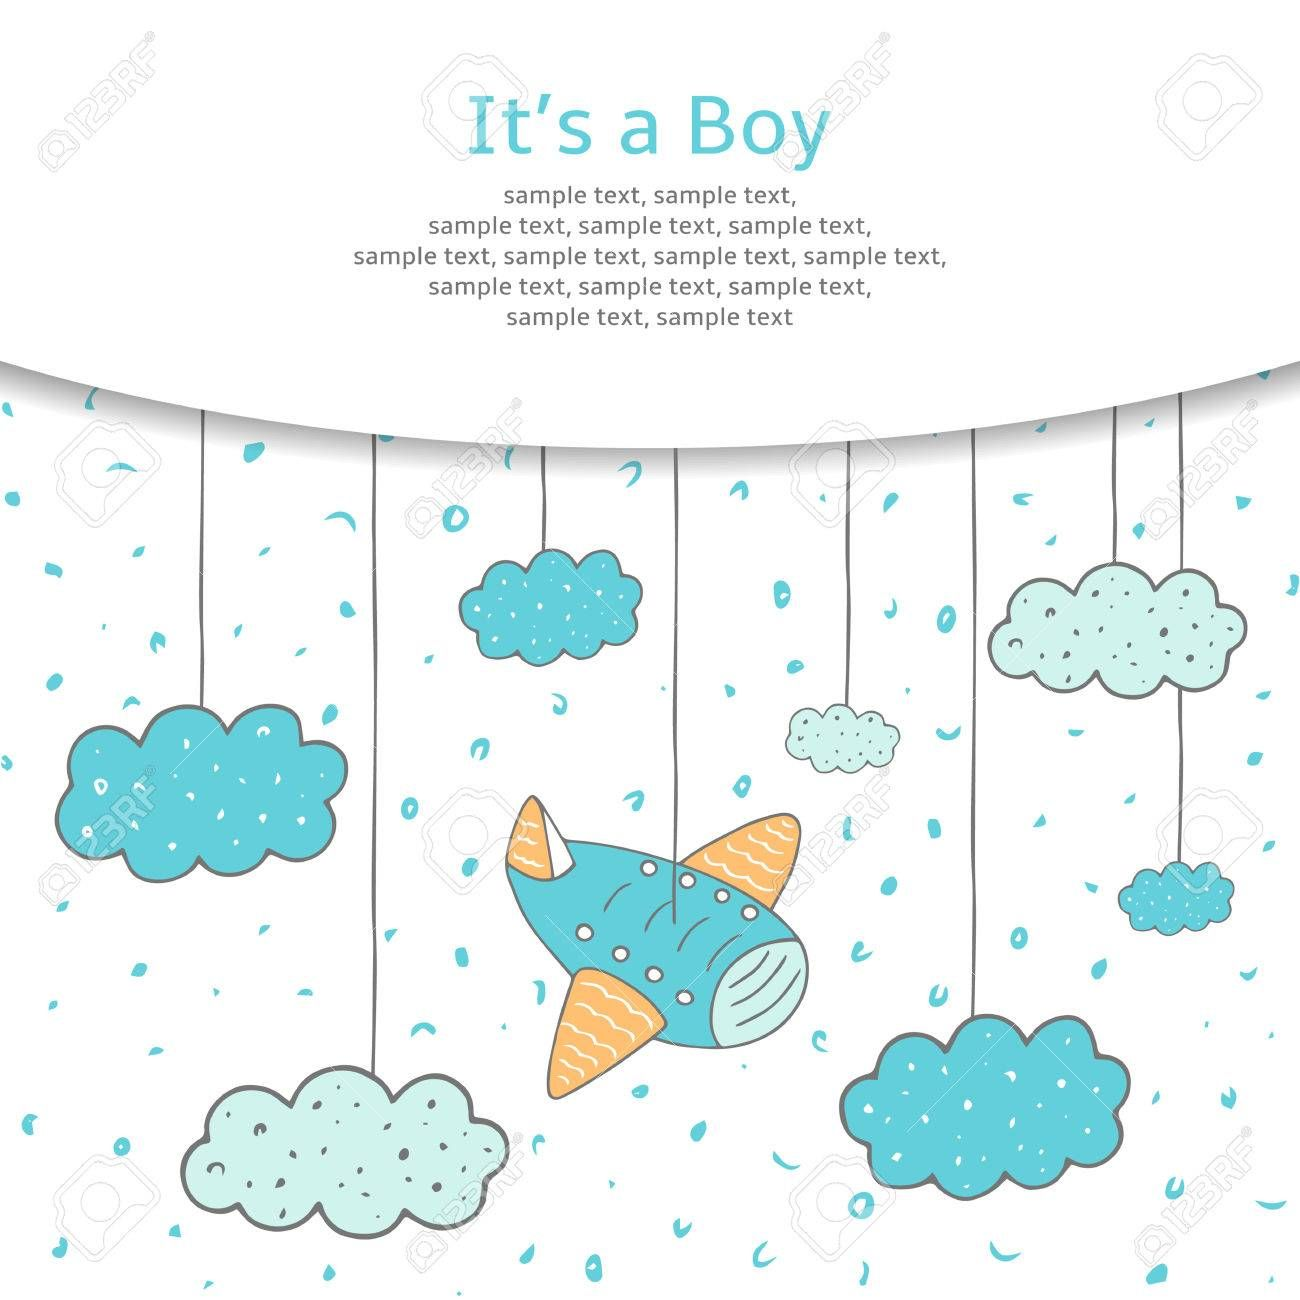 Cute hand drawn doodle baby shower card, cover, background with plane and clouds in the sky. It is a boy postcard. , #Affiliate, #baby, #shower, #card, #doodle, #Cute